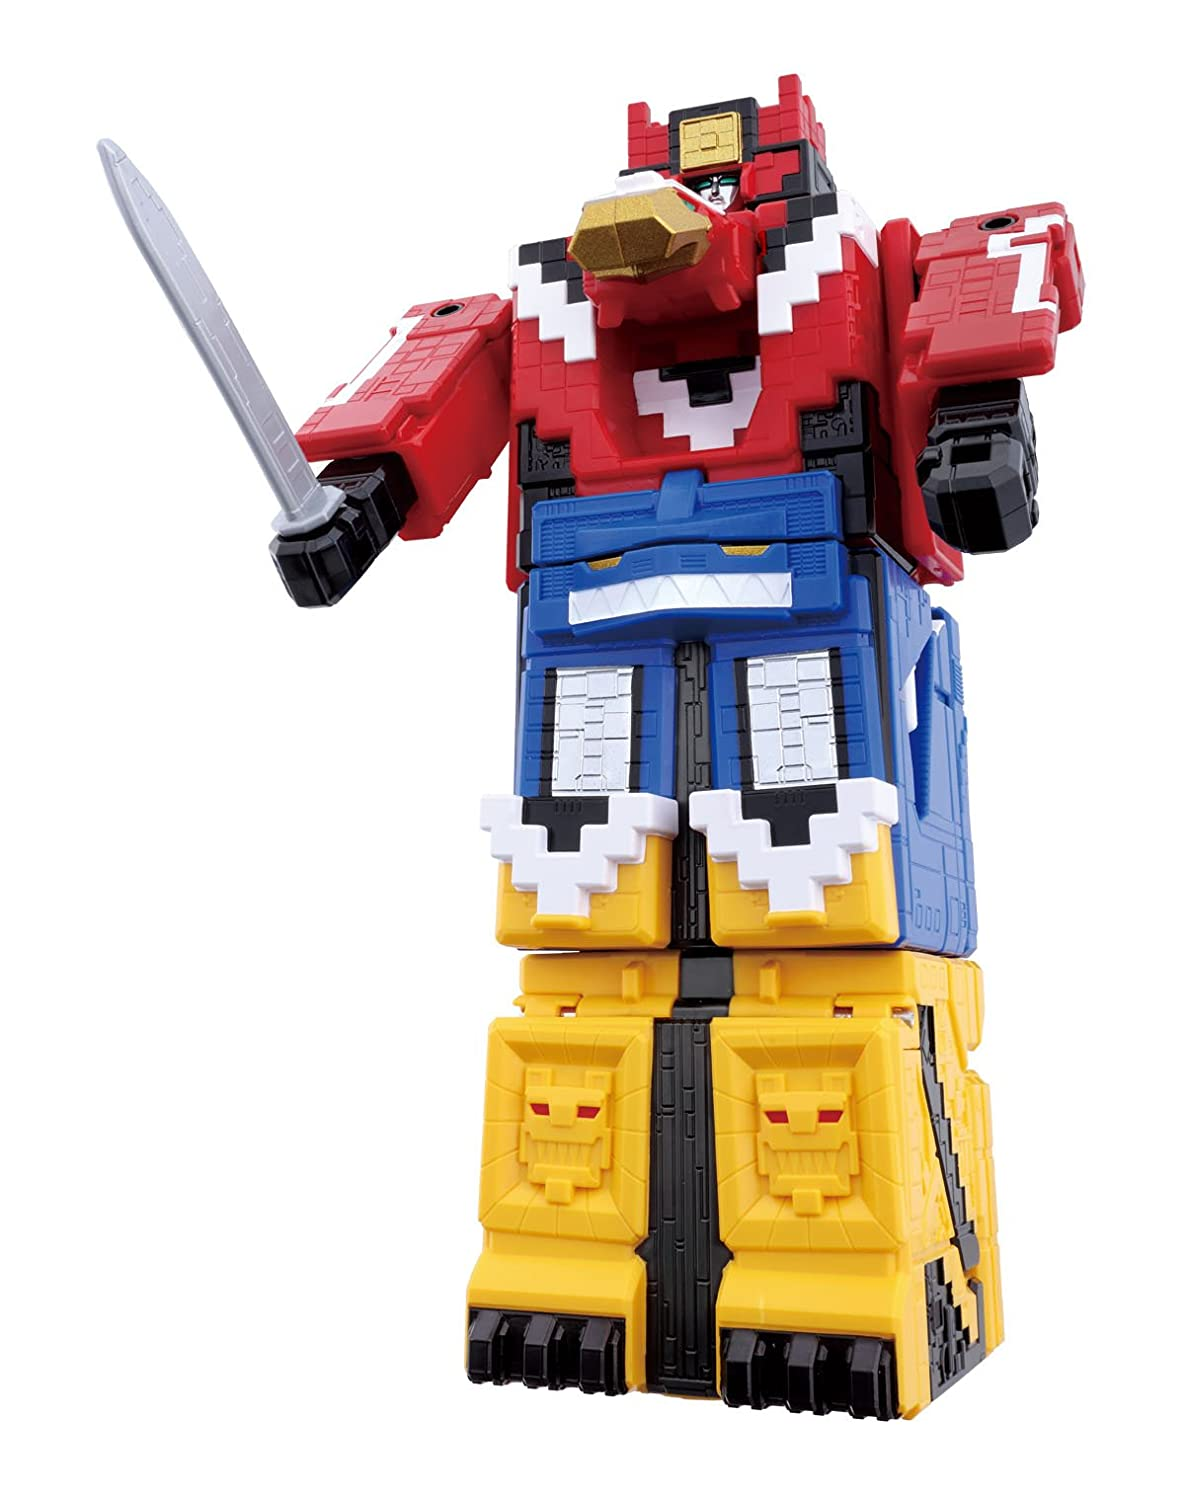 Power Ranger   Doubutsu Sentai Zyuohger  Zyuoh Cube 123 and DX Zyuoh King